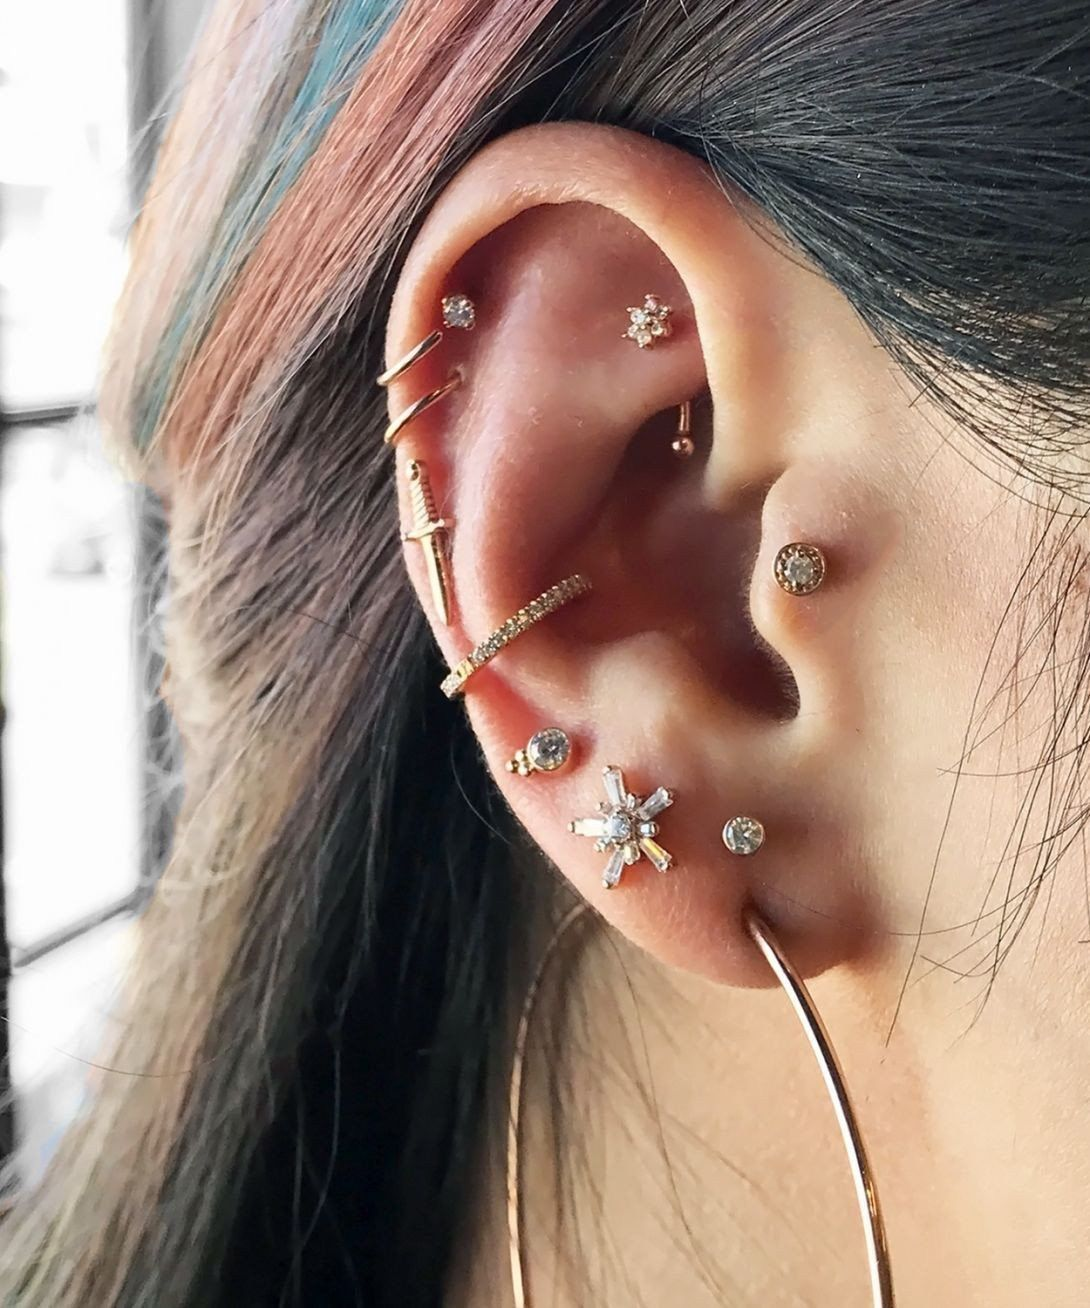 f9a65af1d460 Ear Piercings Picture Ideas Part 2 – Beauty and Fashion Tips and Ideas